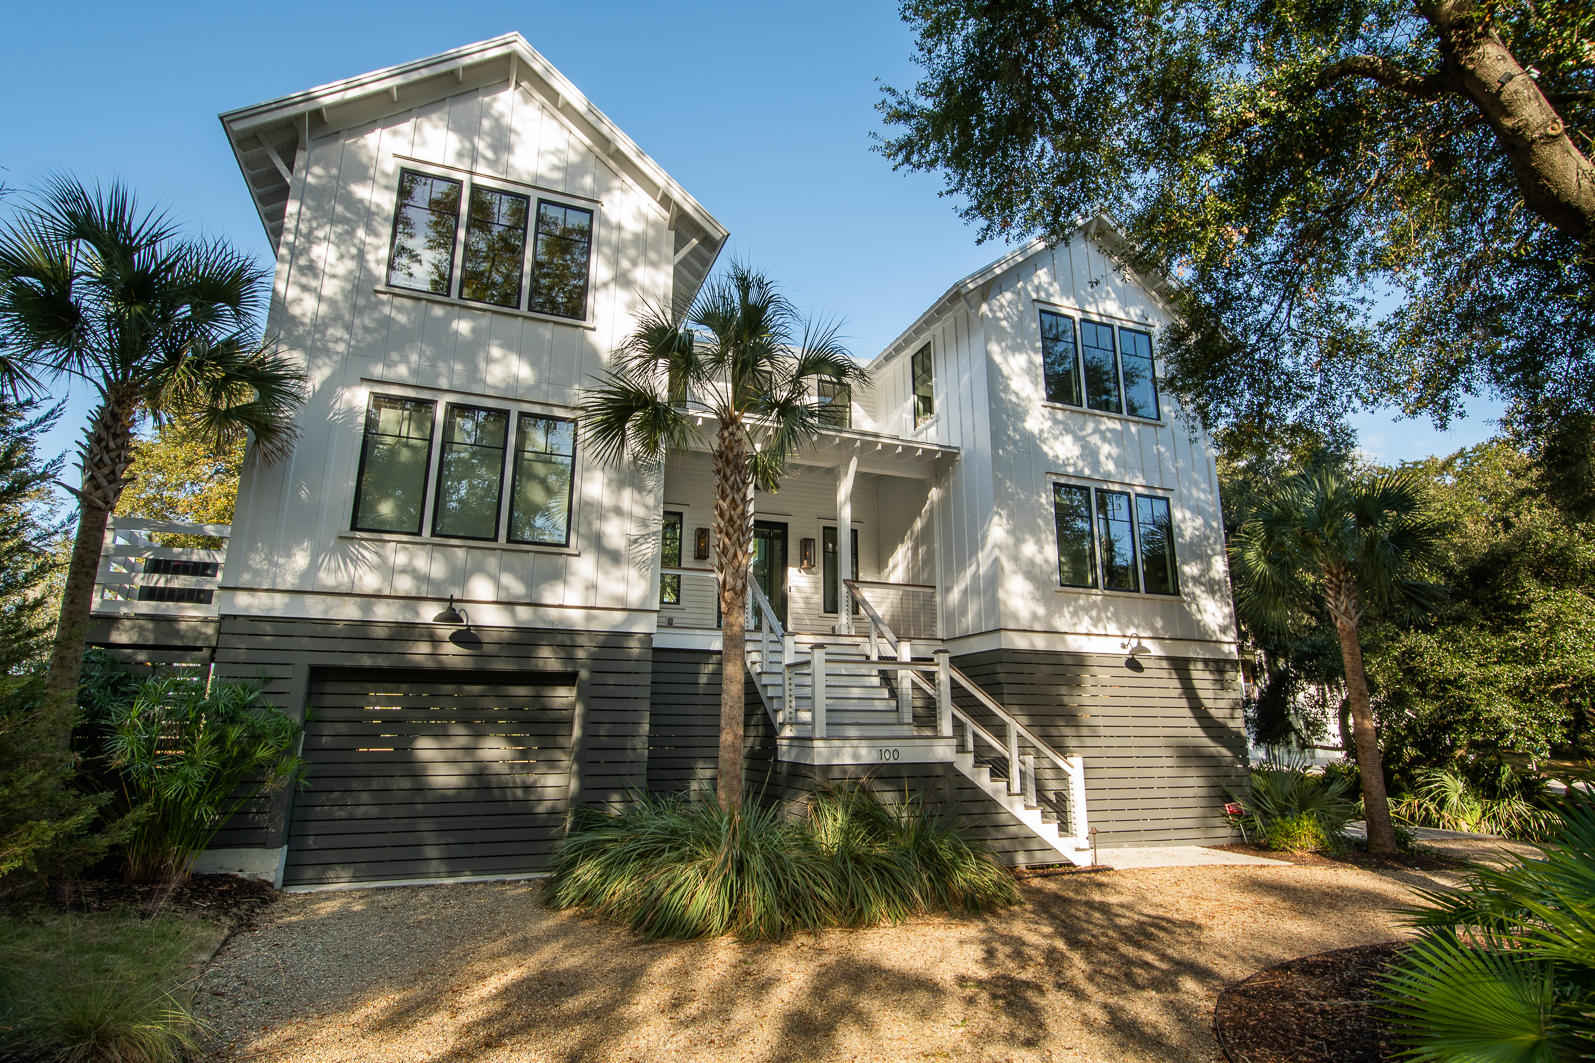 Remleys Point Homes For Sale - 100 5th, Mount Pleasant, SC - 6